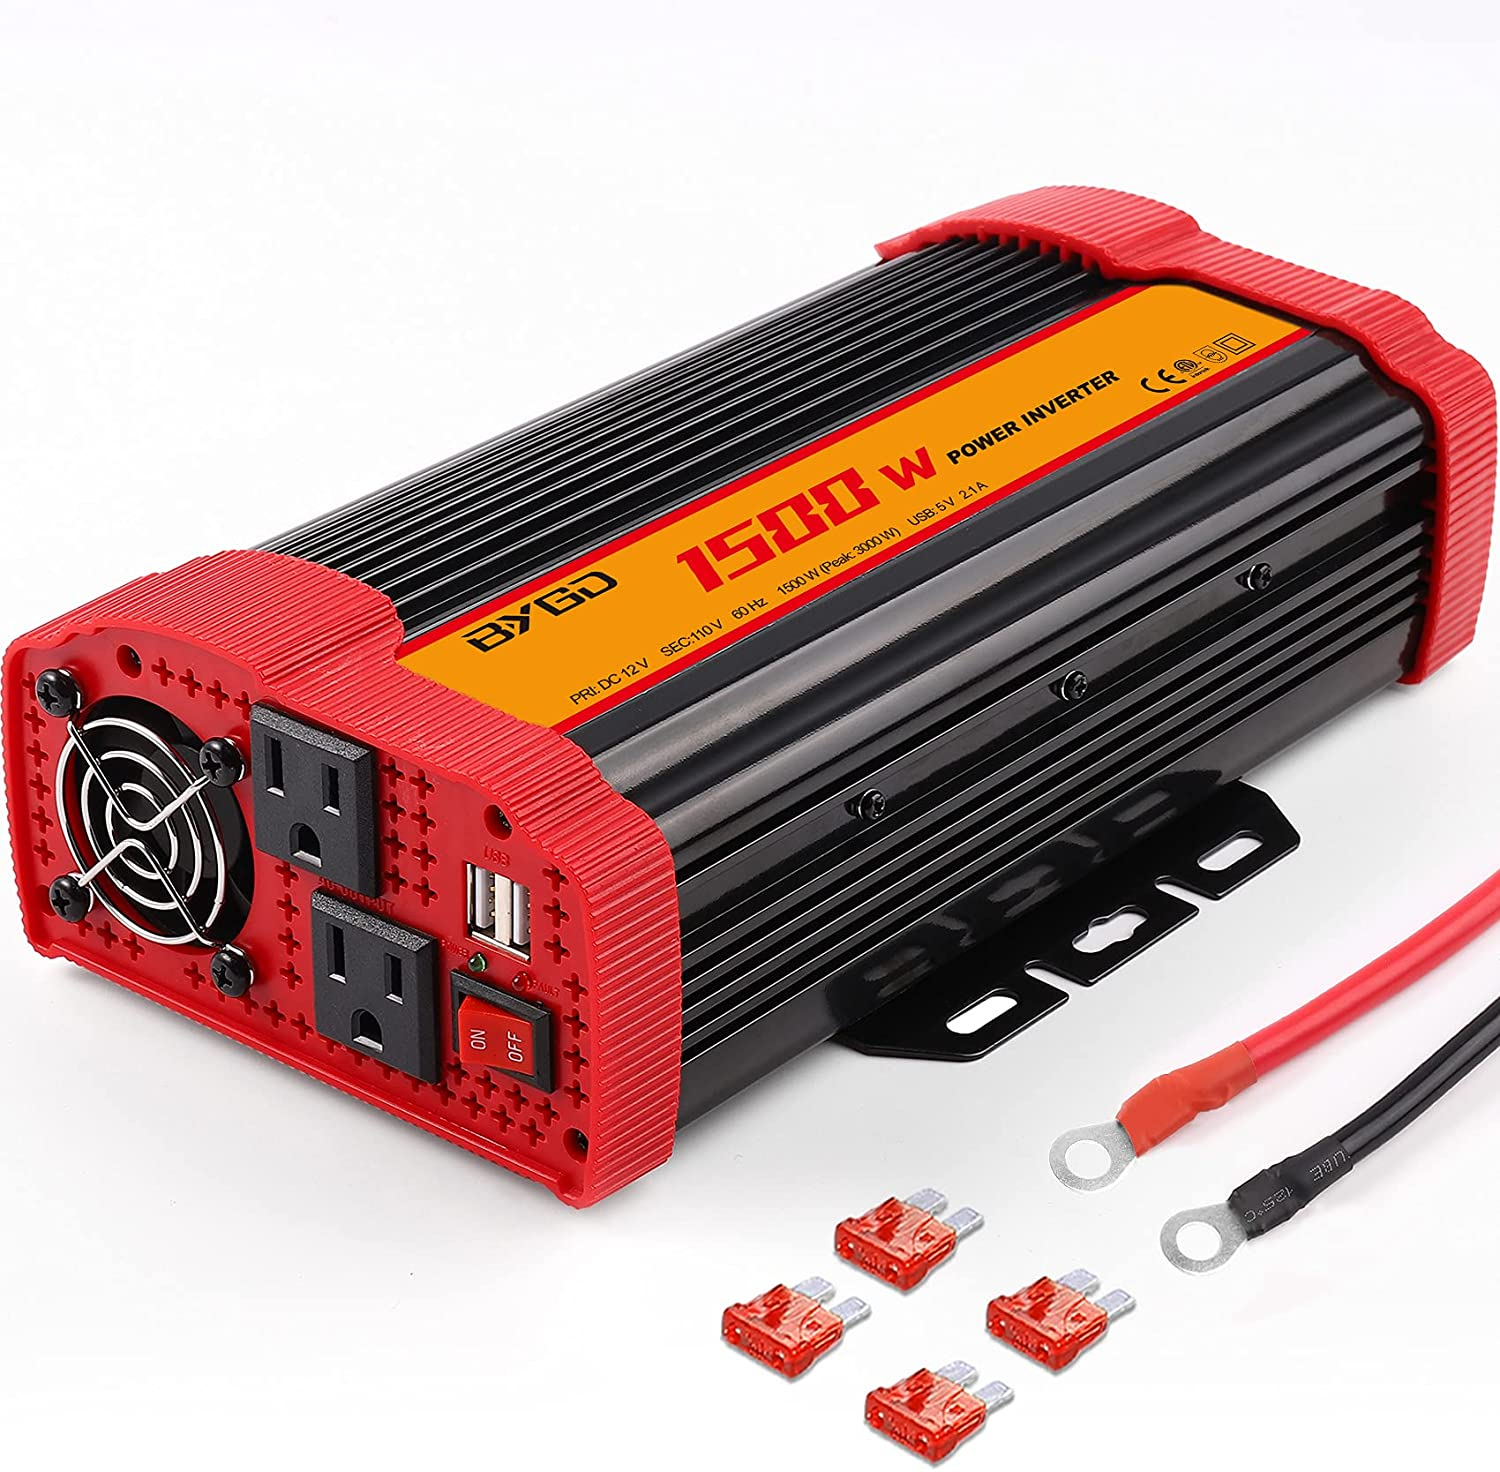 BYGD 1500W Power Inverter DC 12V to 110V AC Converter and Peak Power 3000W Car Inverter with 2 x 2.1A USB Ports Quick Charging Car Charger, Solar Inverter ETL Listed